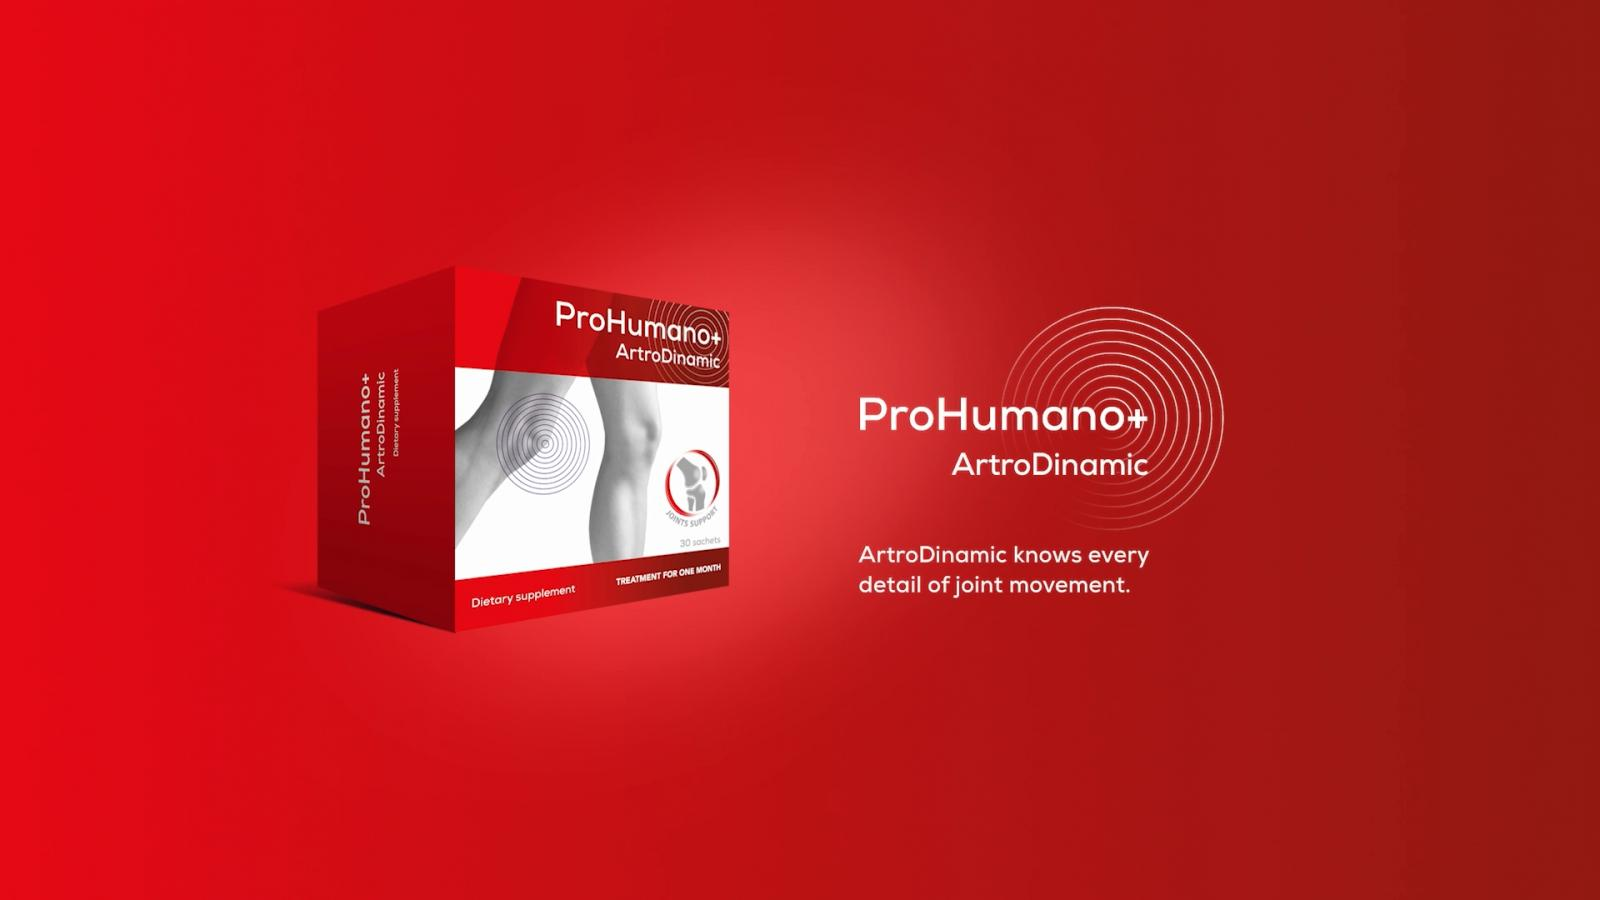 ArtroDinamic for joints. Supports cartilage regeneration, increases lubrication and joint mobility.